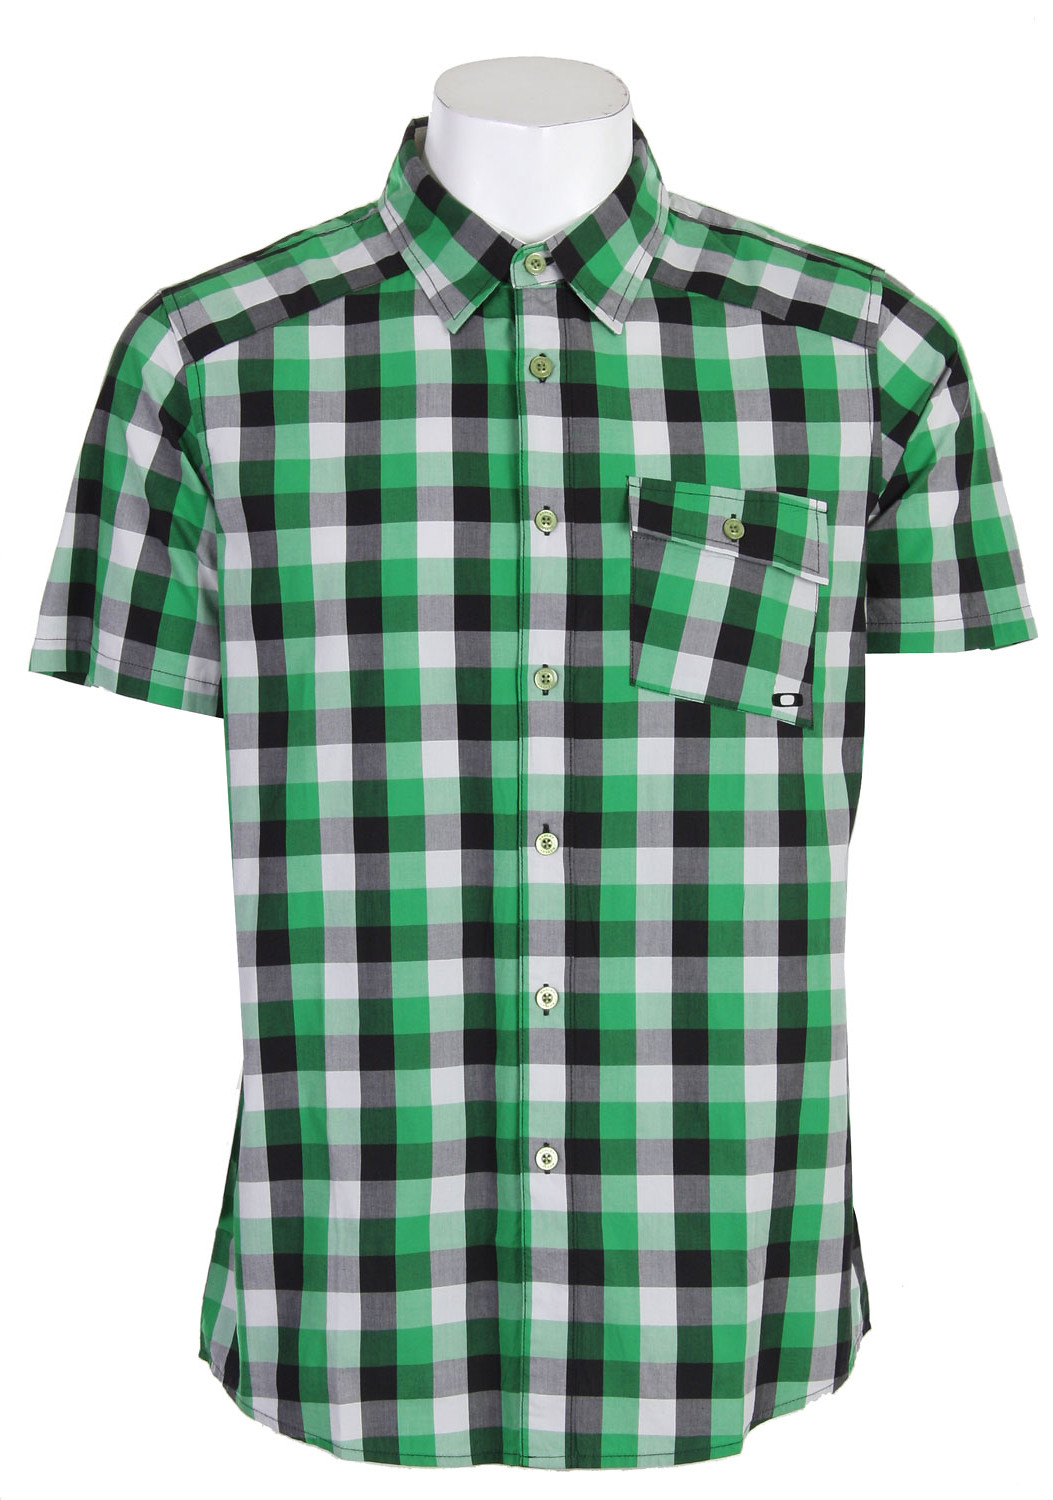 Oakley Slant Detail Plaid Woven Shirt Medium Green  oakley-slant-detailpld-polo-mediumgrn-10.jpg